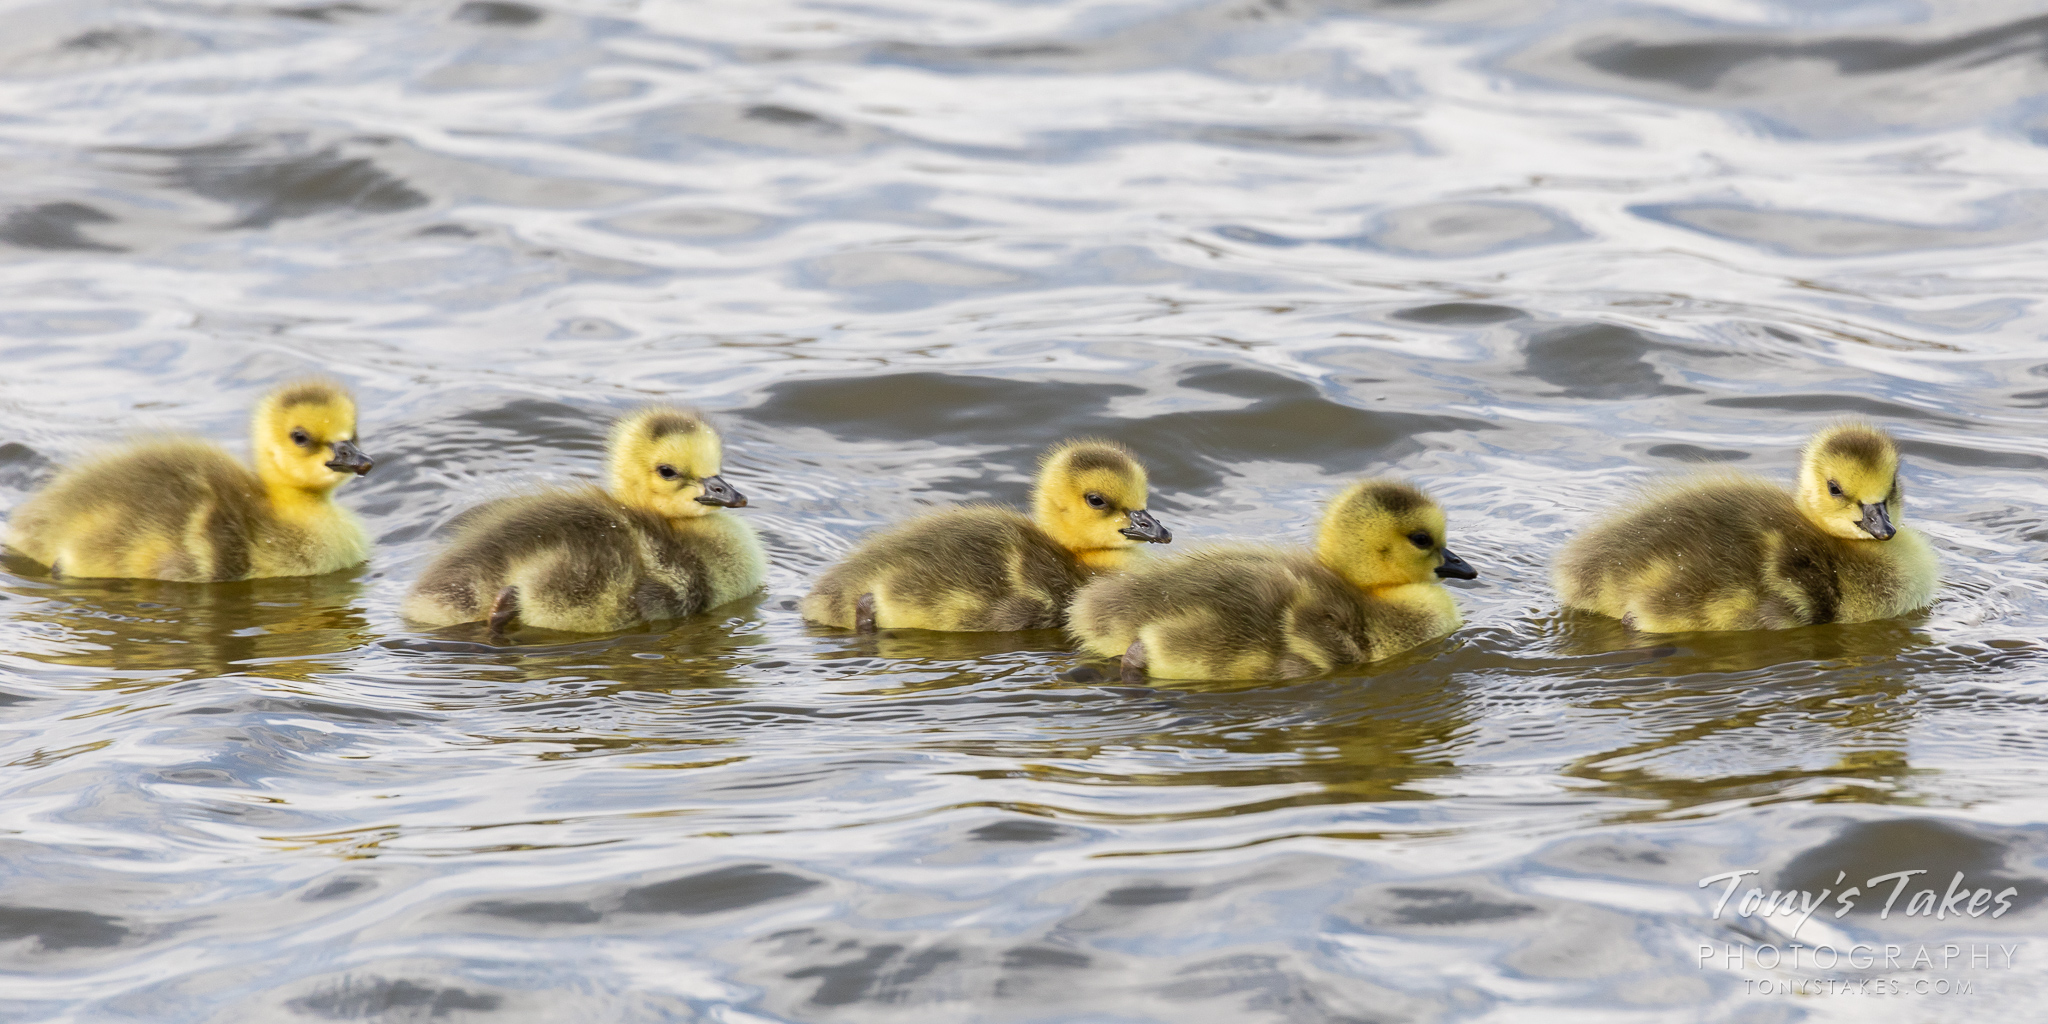 Canada goose goslings go for a swim soon after their birth in Colorado. (© Tony's Takes)